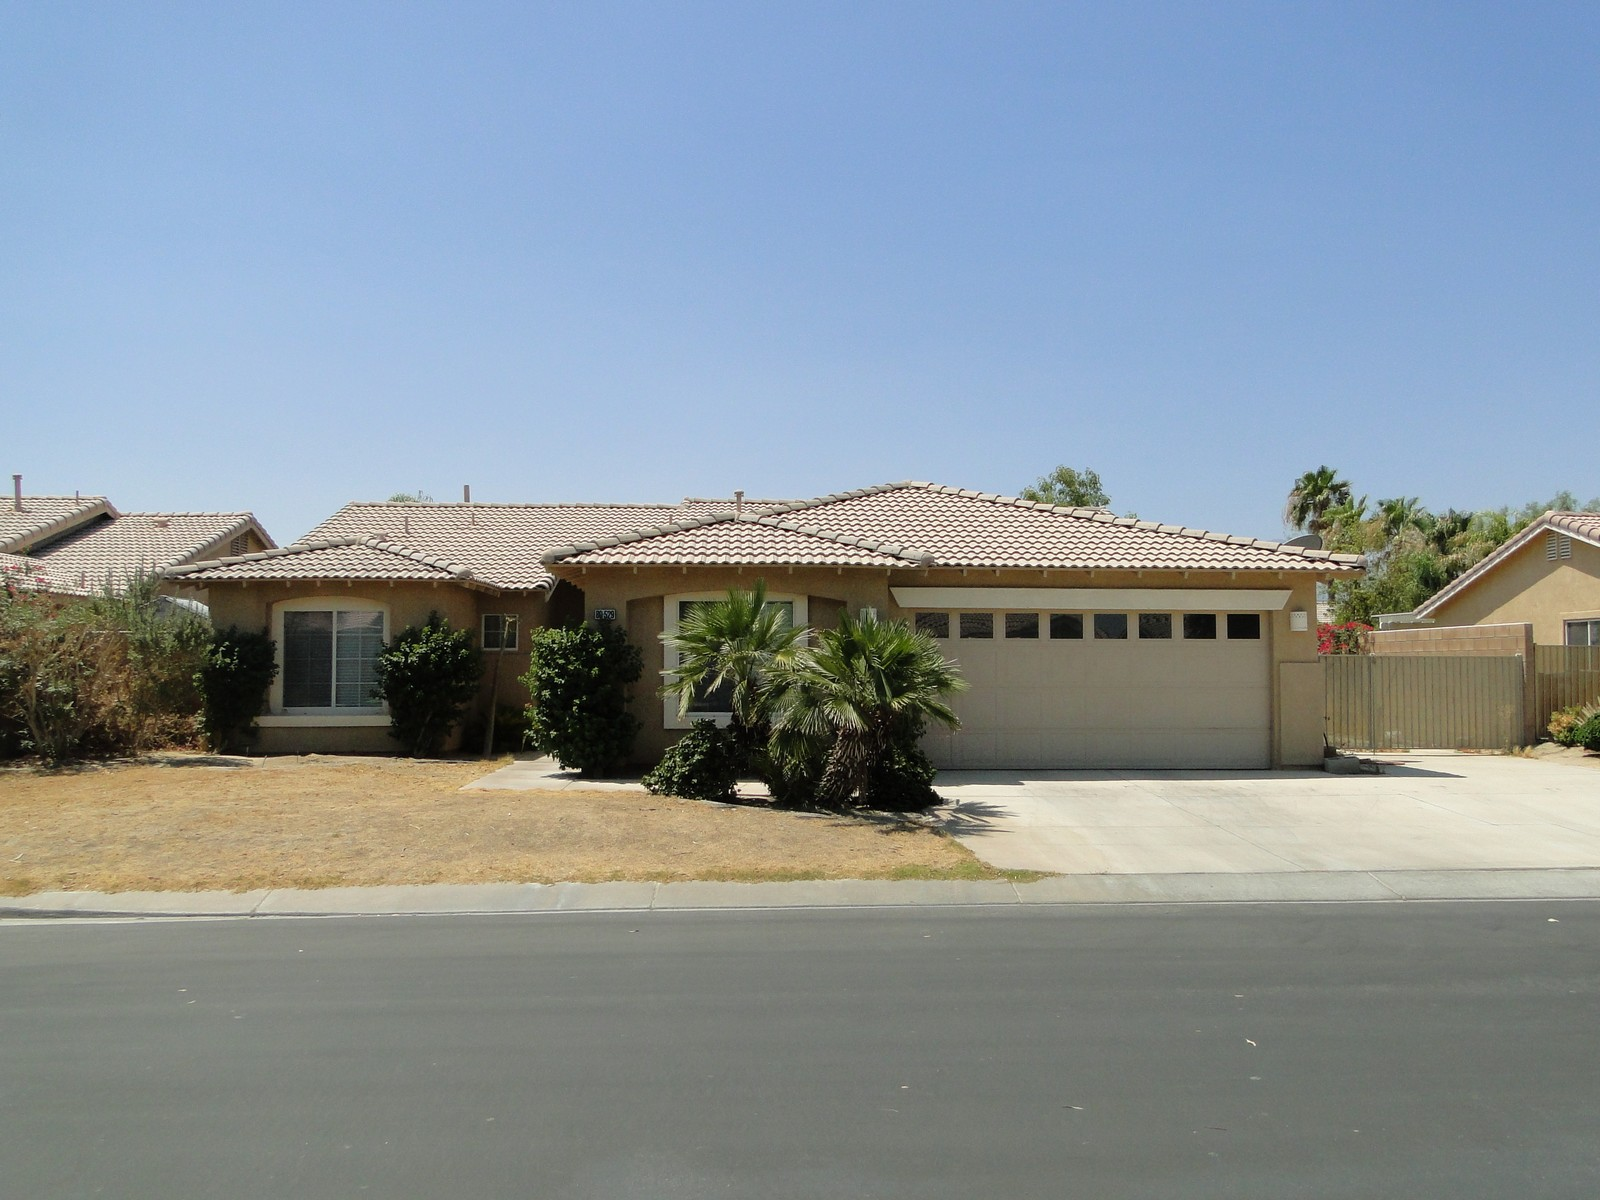 Single Family Home for Sale at 80529 Philadelphia Avenue Indio, California 92201 United States